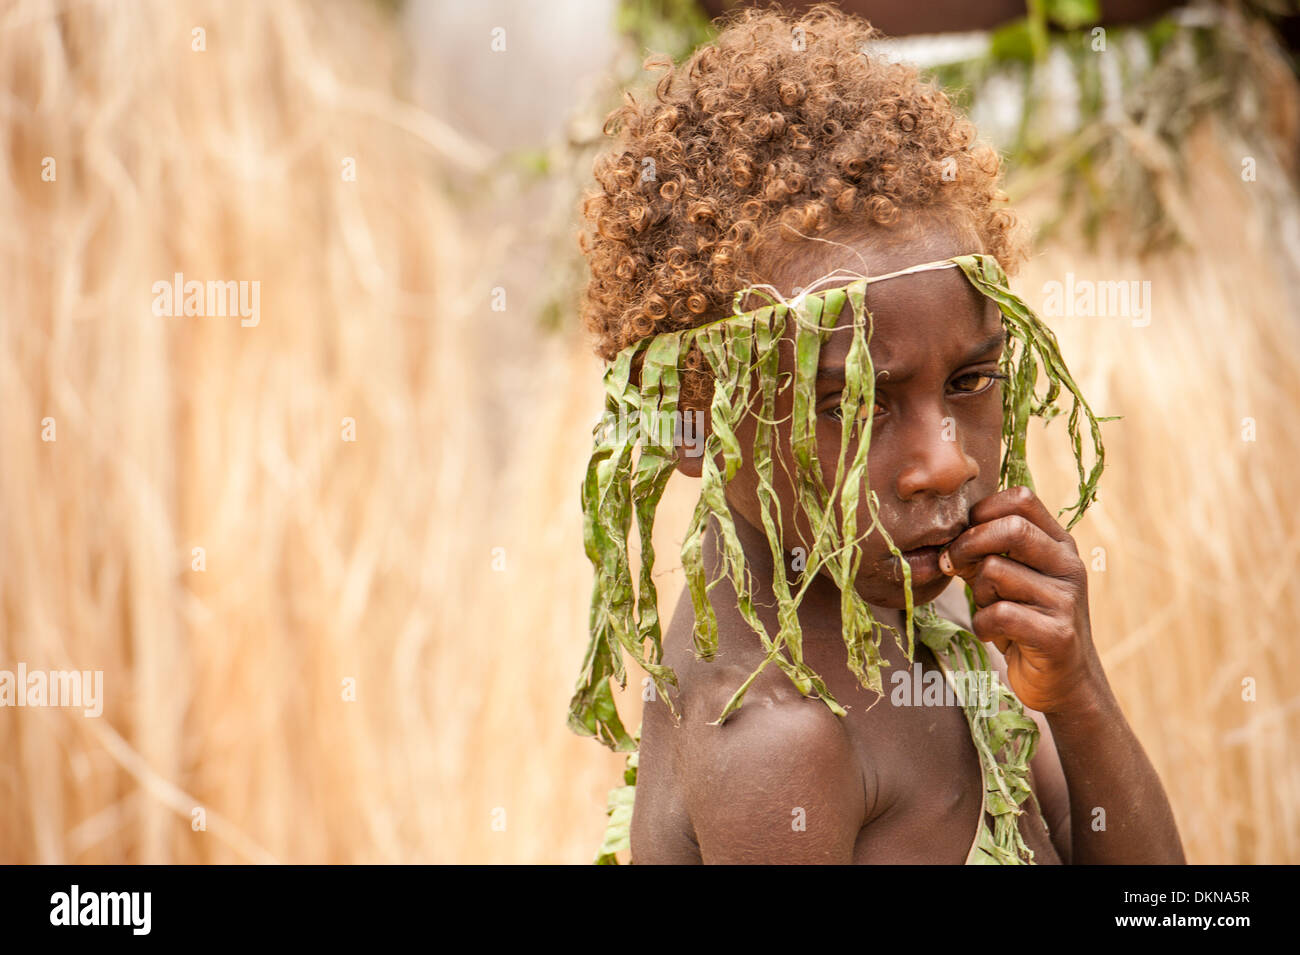 Child amongst performers from Tanna taking part in Fest' Sawagoro, a celebration of kastom, traditional culture in Vanuatu. - Stock Image